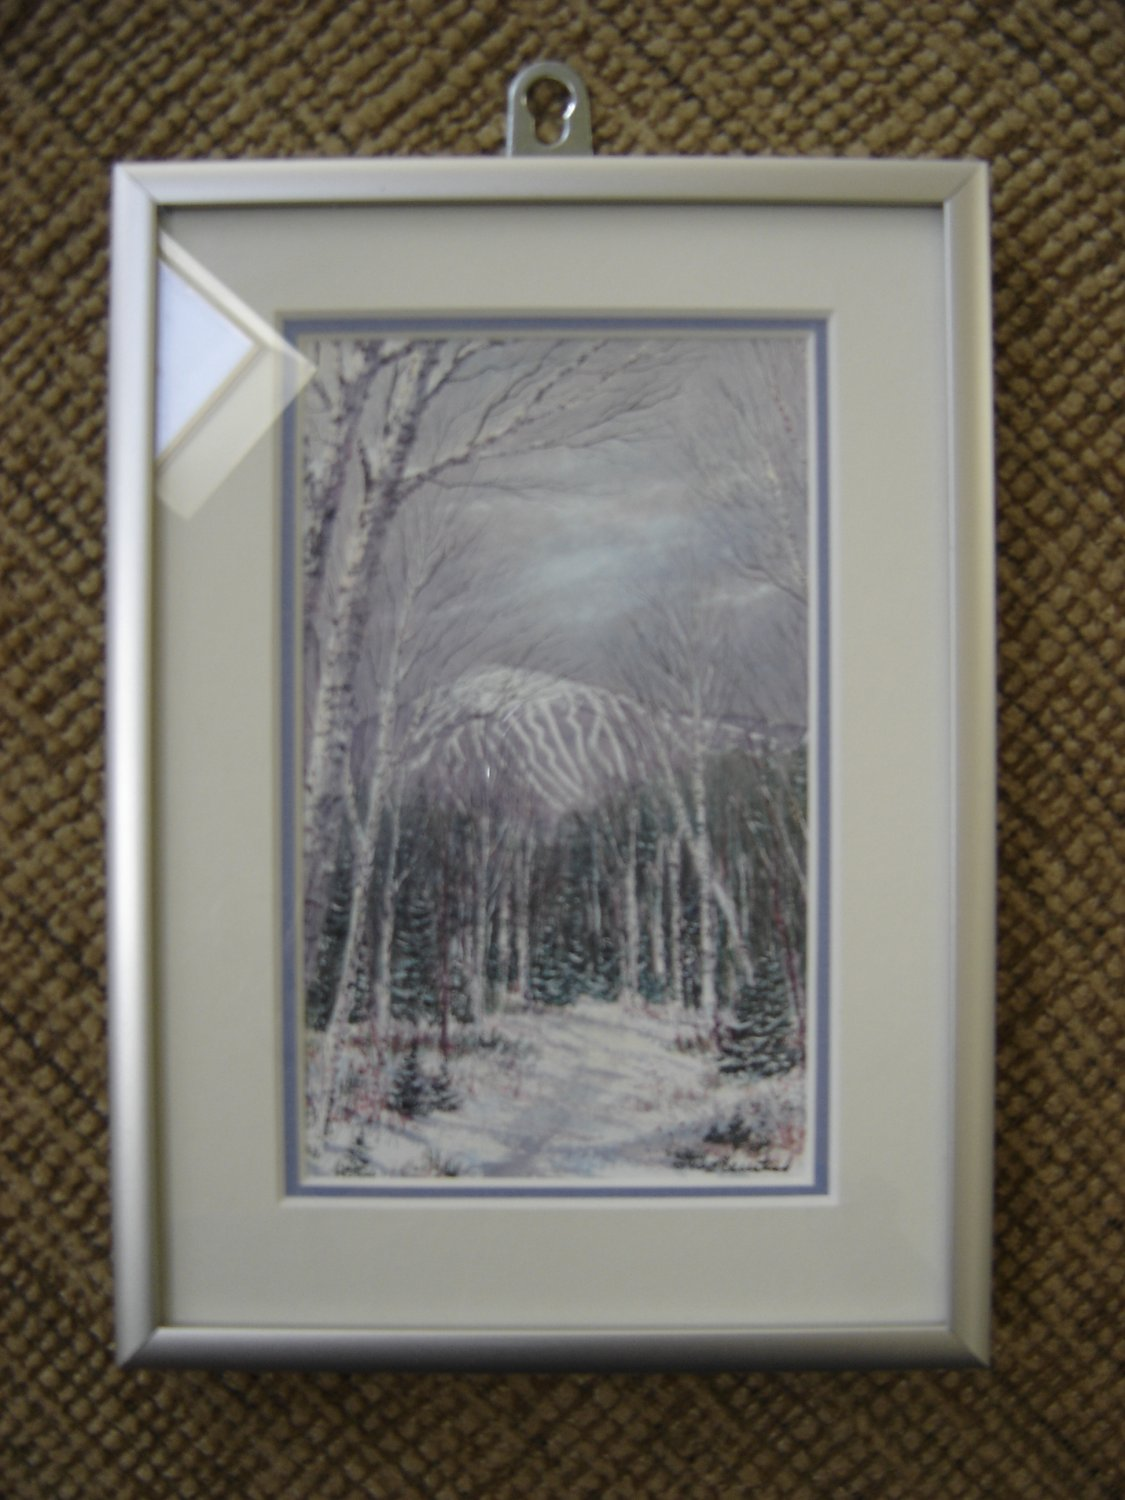 """STANLEY KEIRSTEAD'S """"SUGARLOAF"""" of MAINE PRINT - MATTED with ALUMINUM FRAME!"""